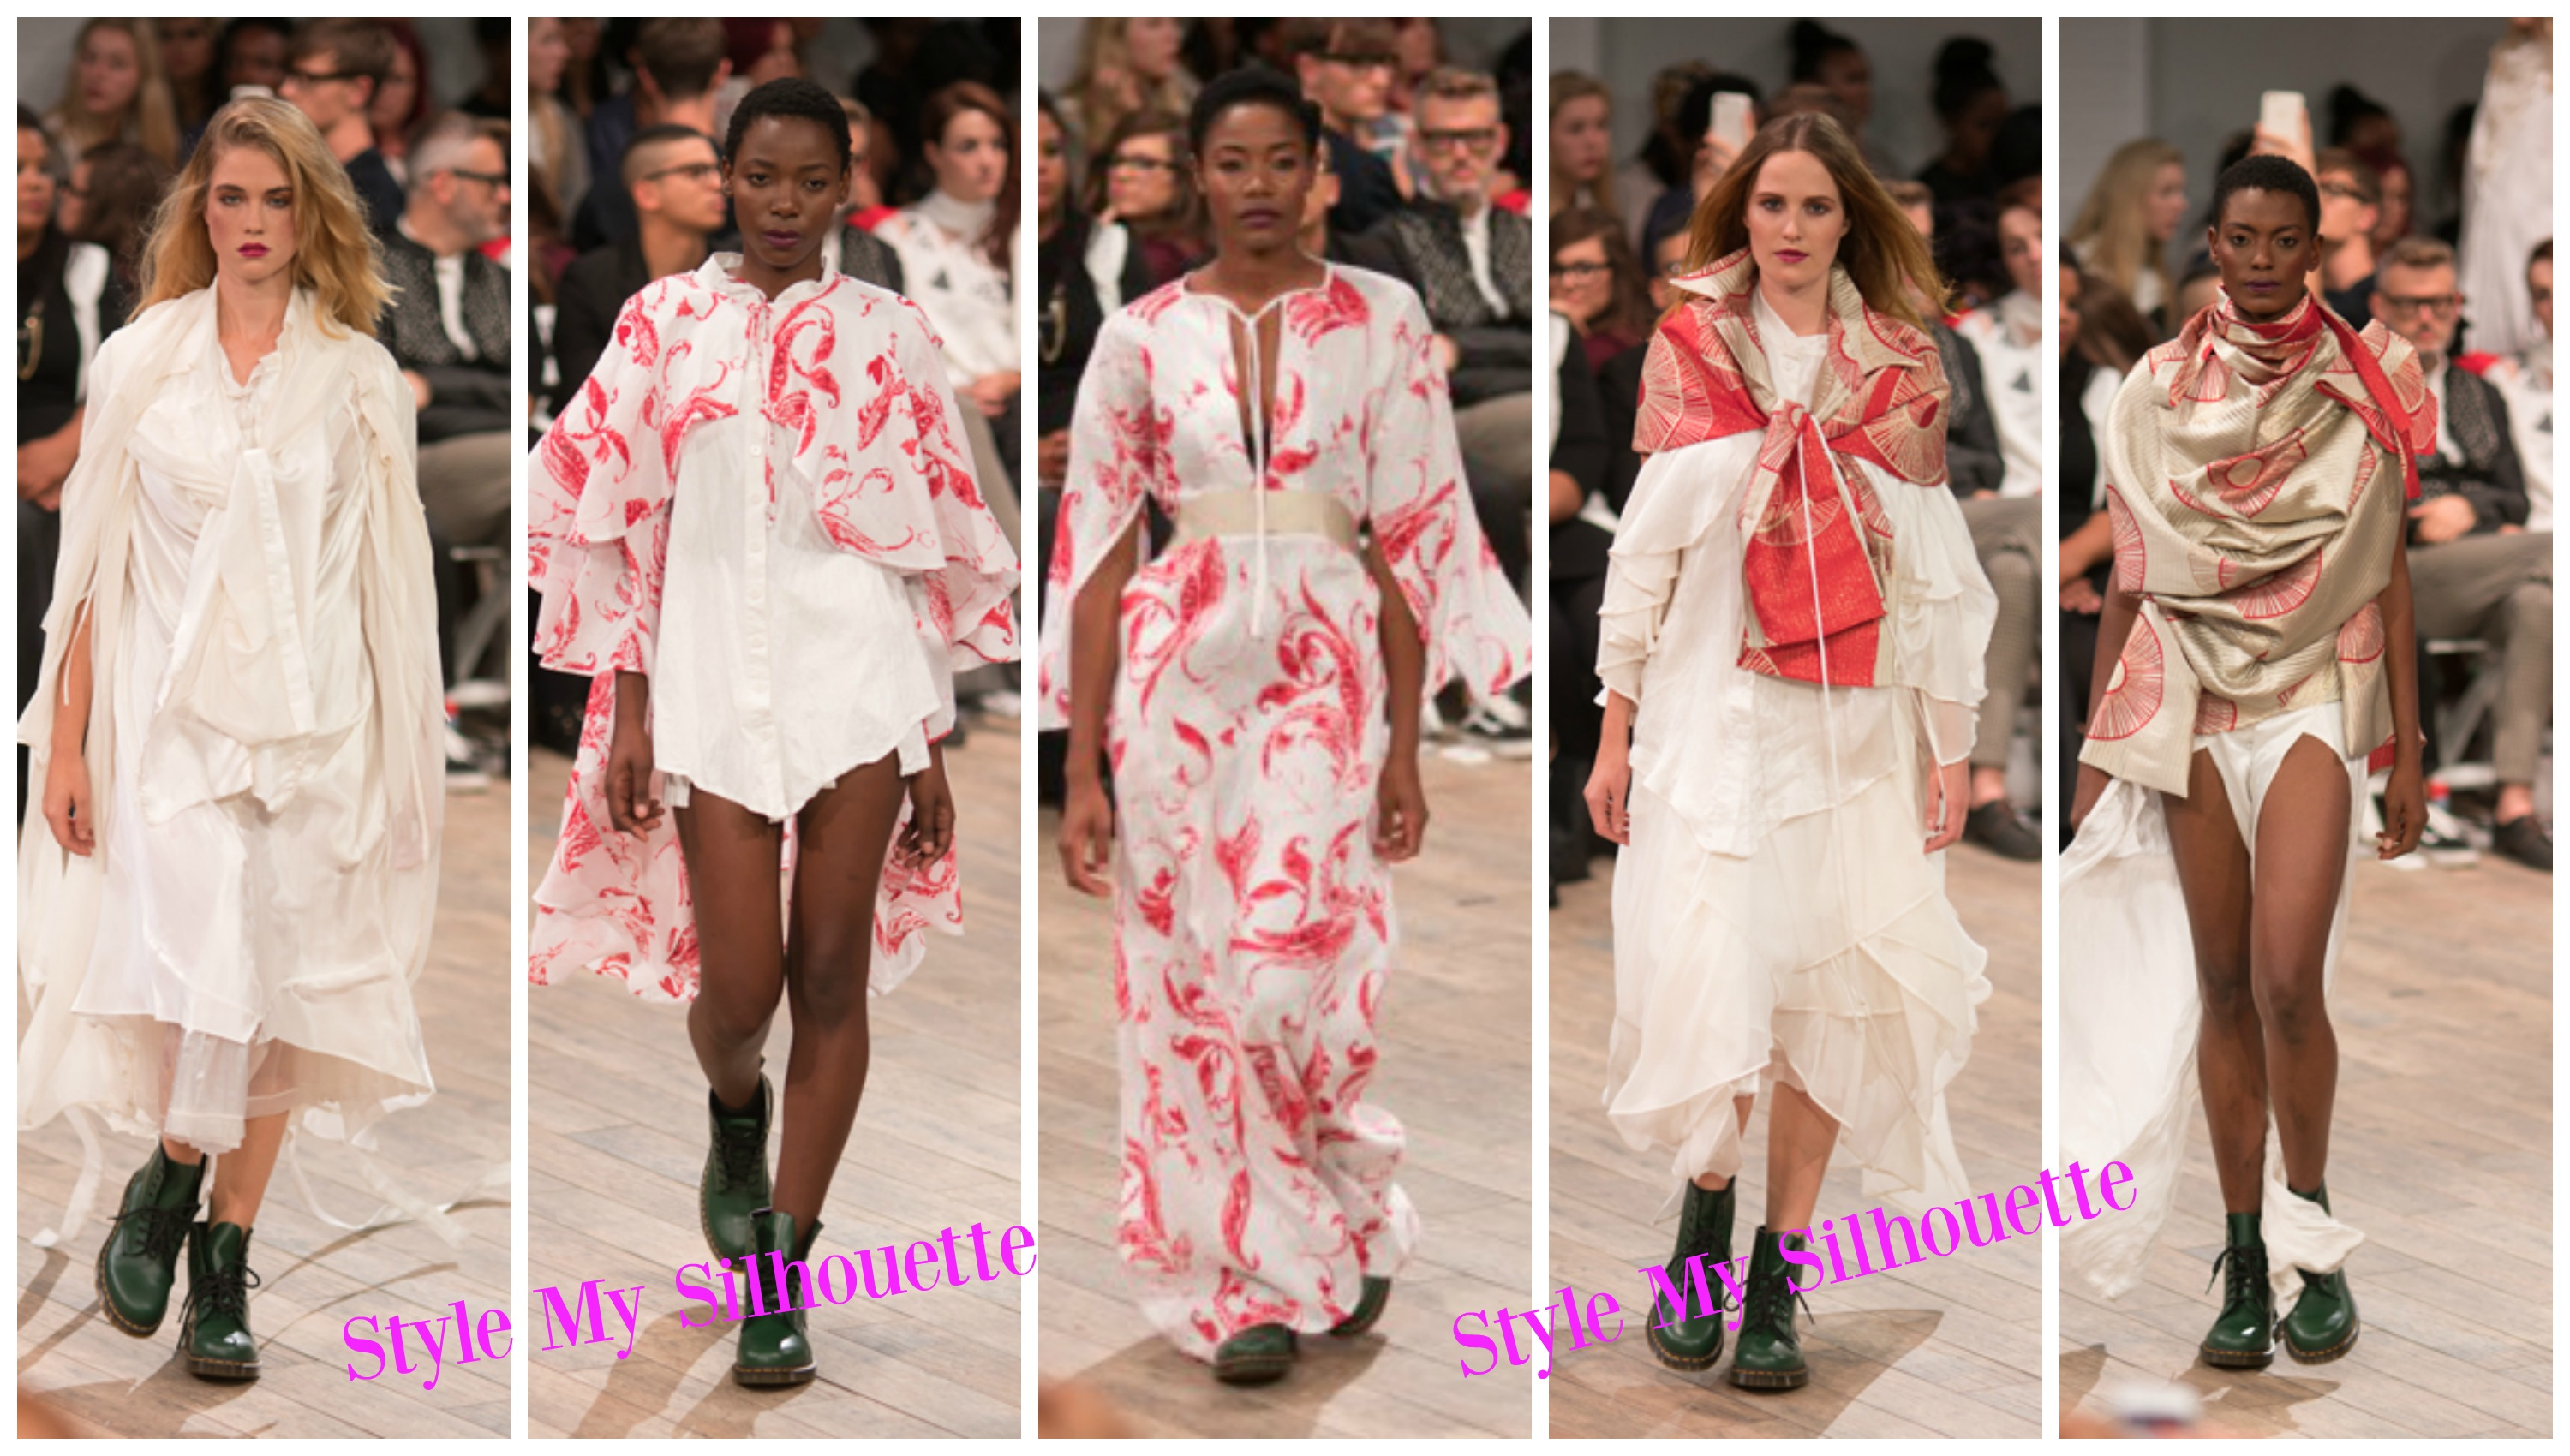 The South Africa Fashion Week 2016 Clive Rundle Spring Summer 2016 Silhouette Trend